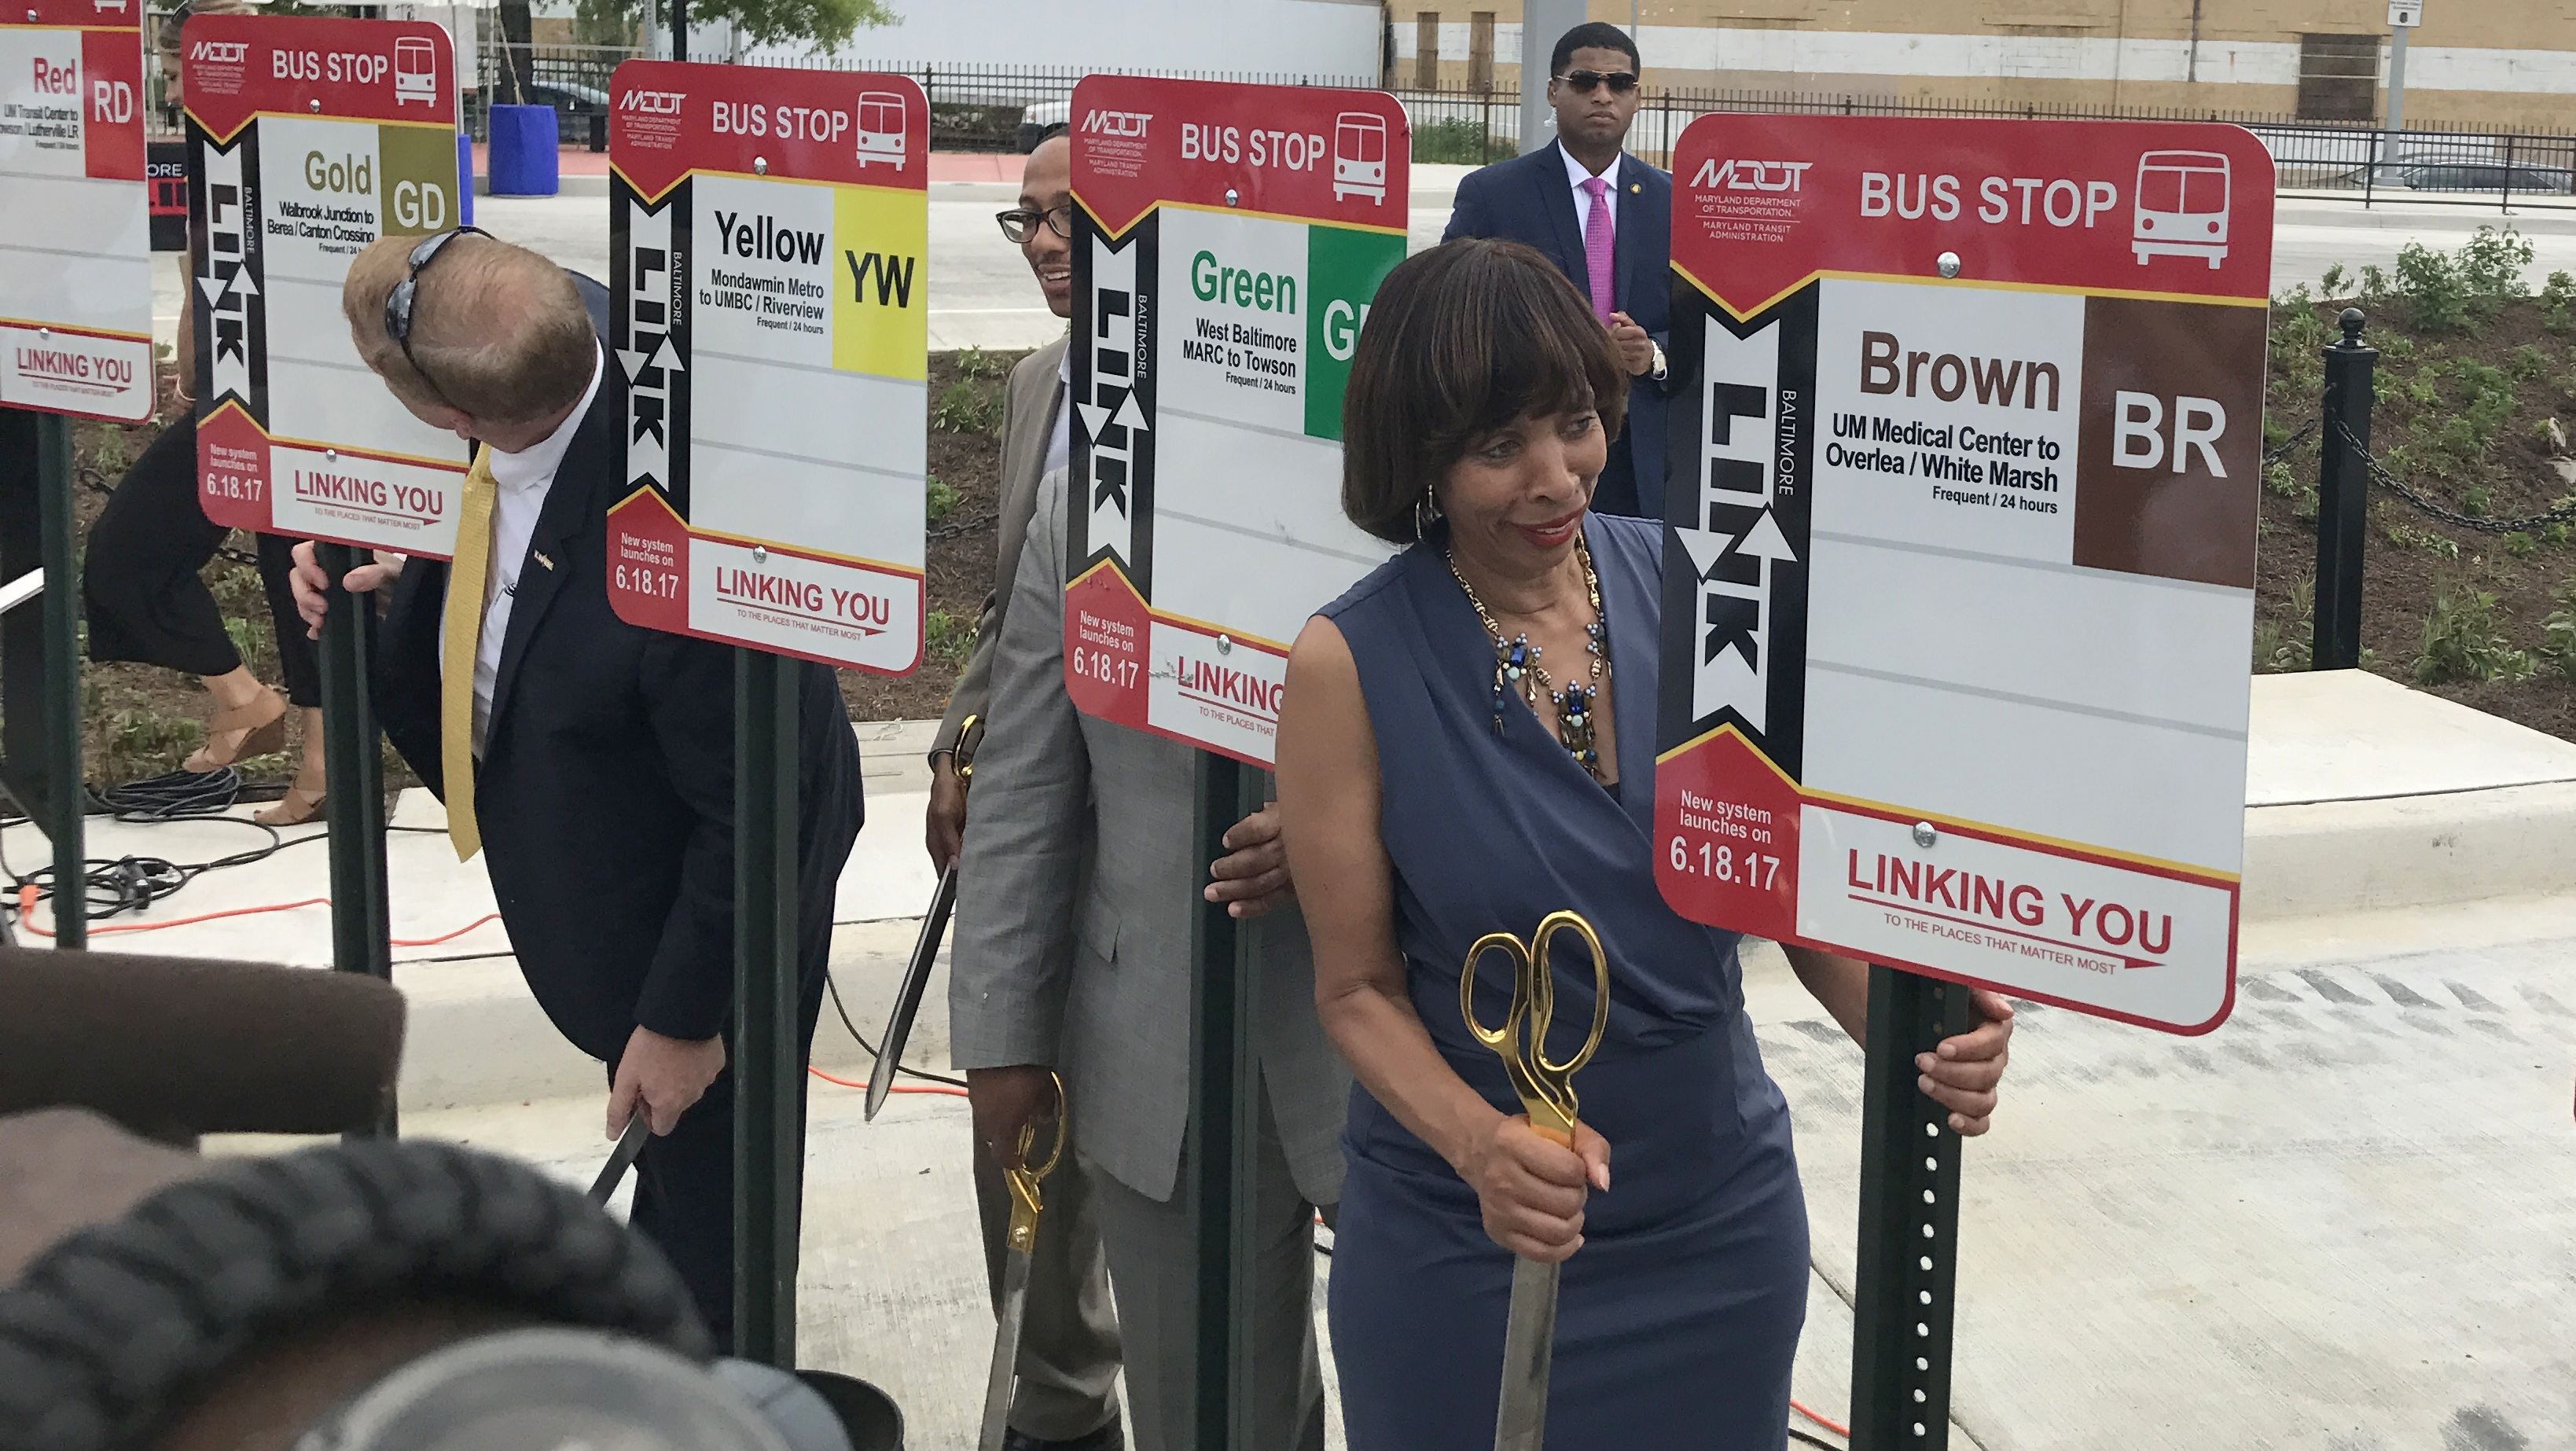 Mayor Catherine Pugh checks out new route signs for the revamped Baltimore region bus system going into effect this weekend. (Louis Krauss)